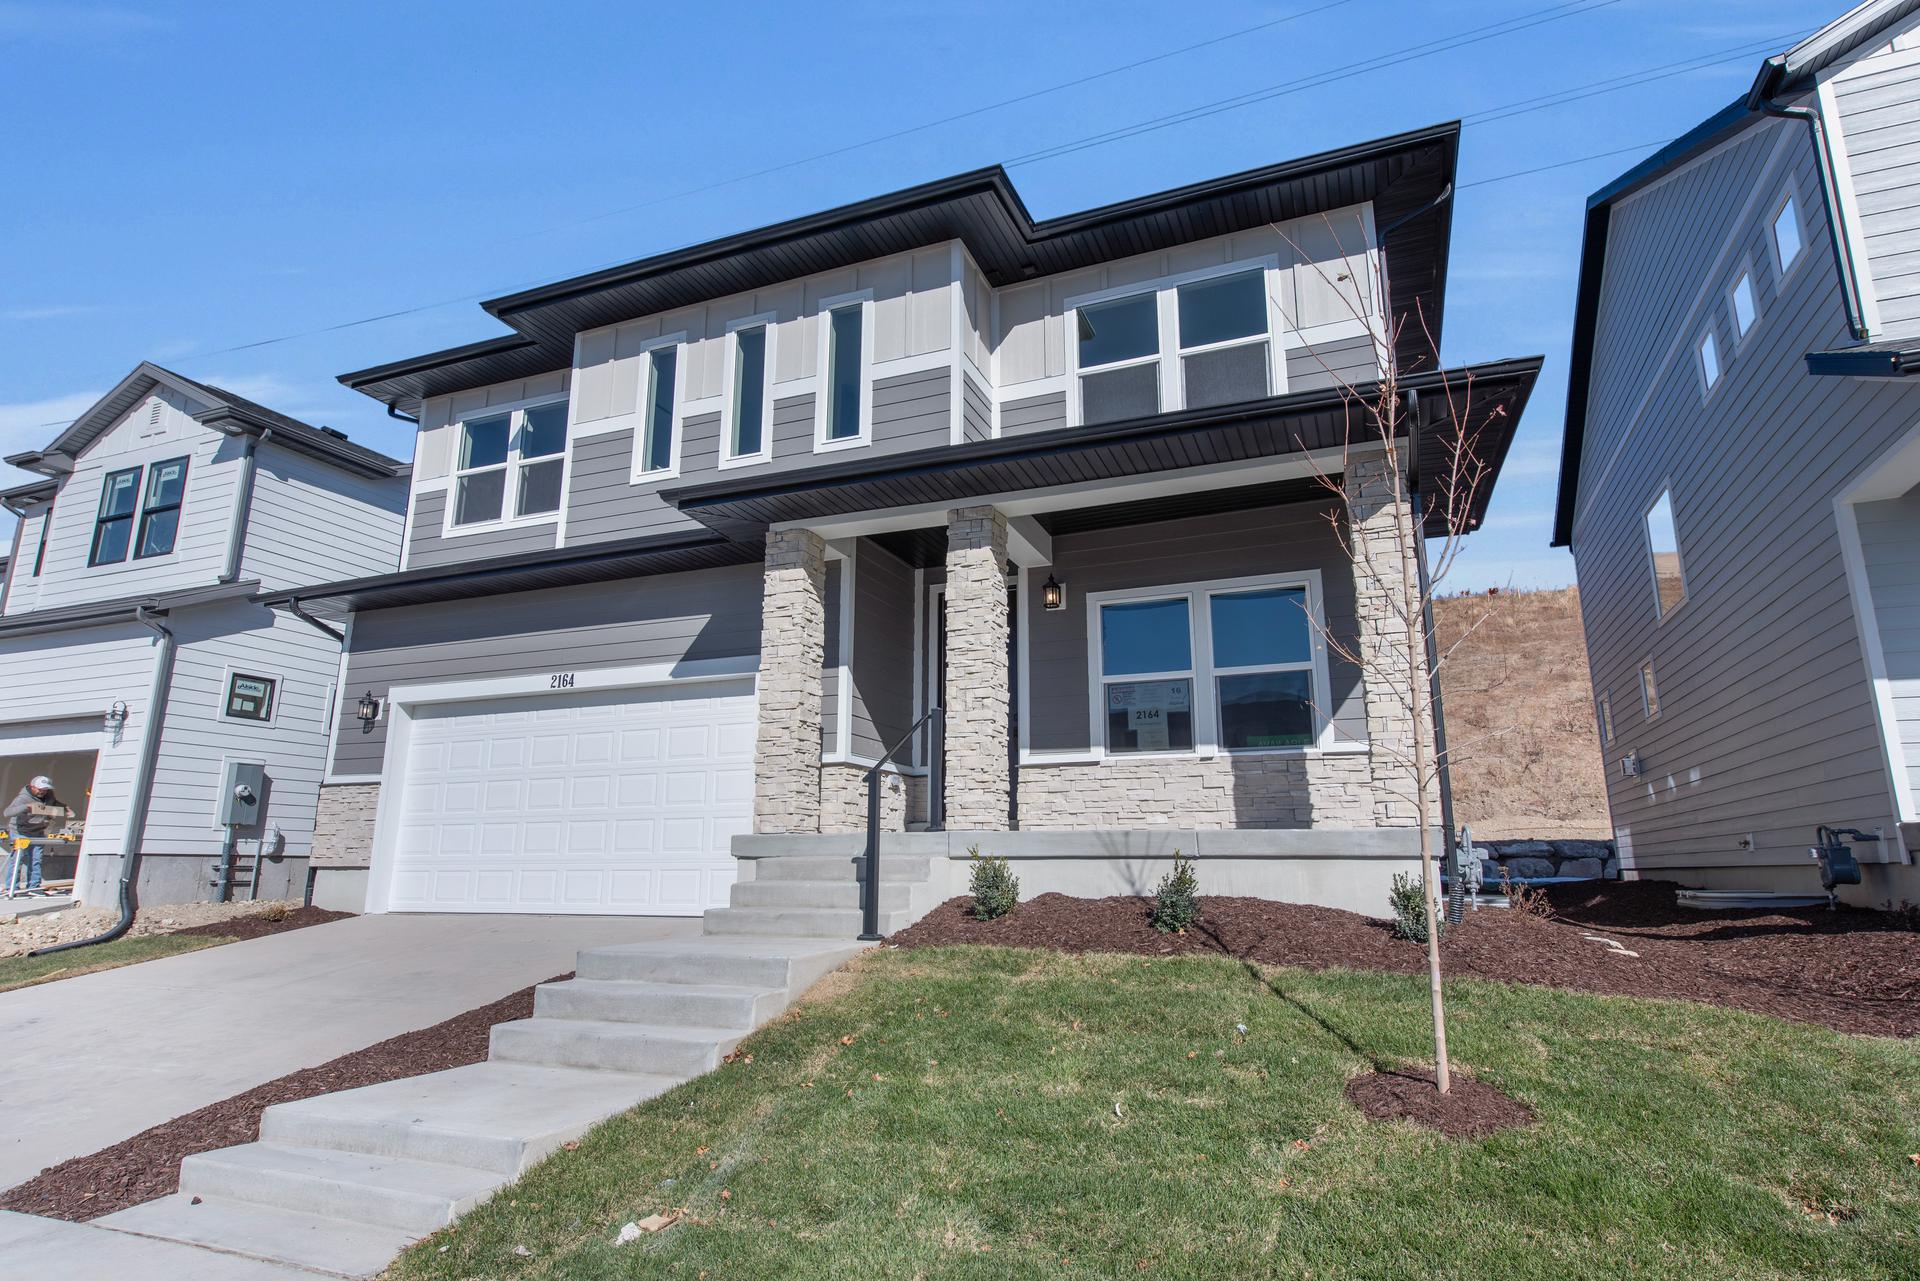 New Home for sale 5176 N Silver Pine Ln #74, Lehi, UT